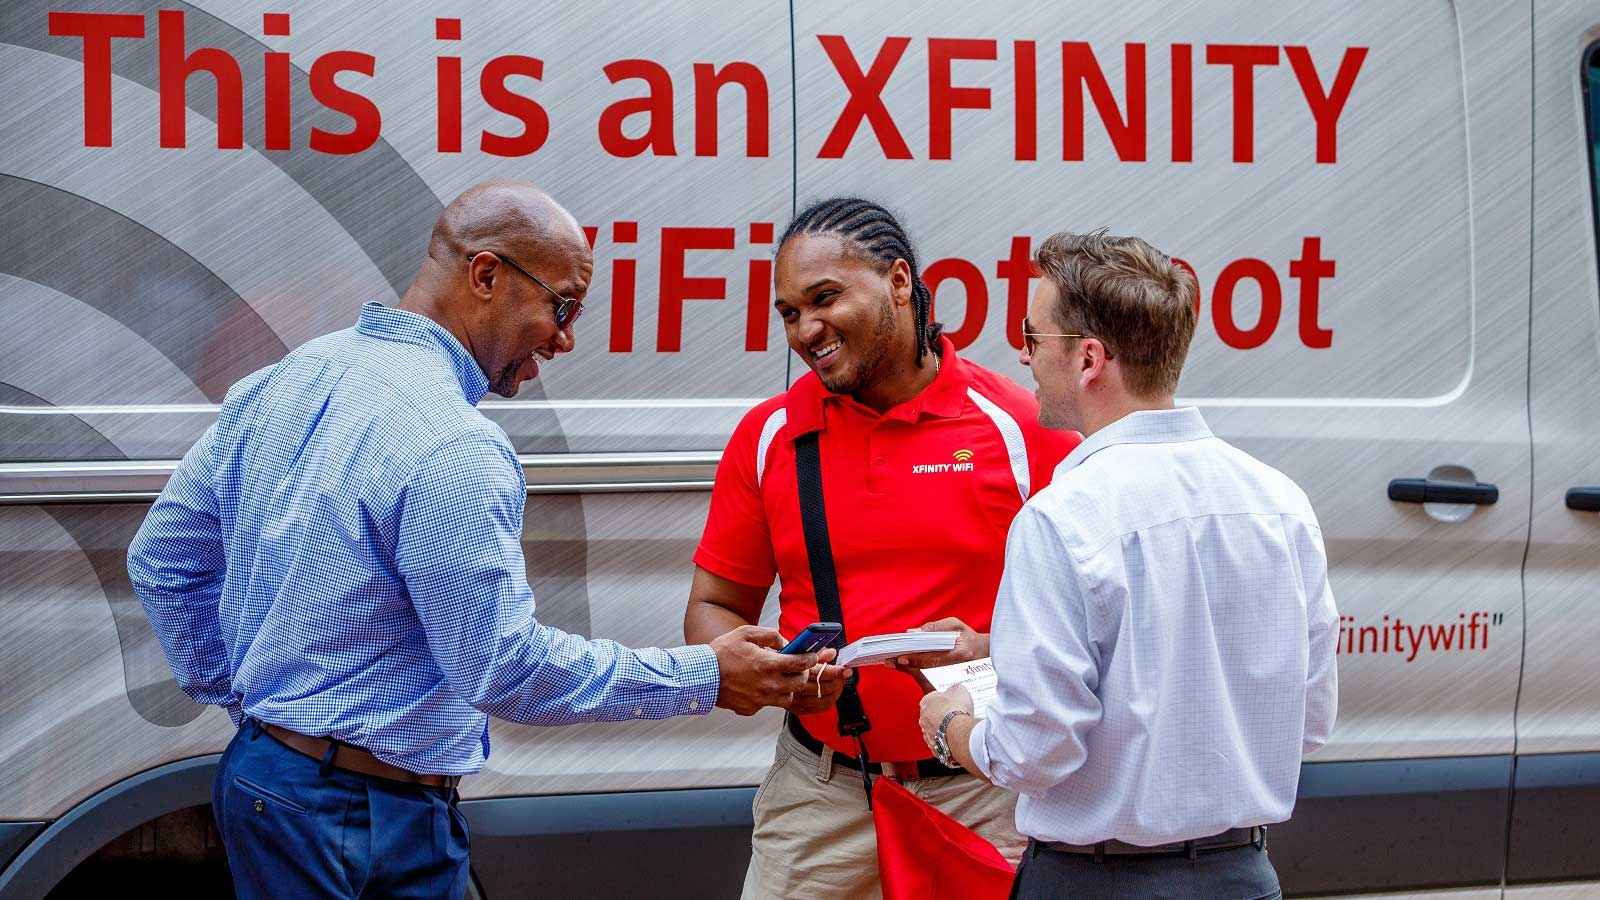 Xfinity tech outside of truck